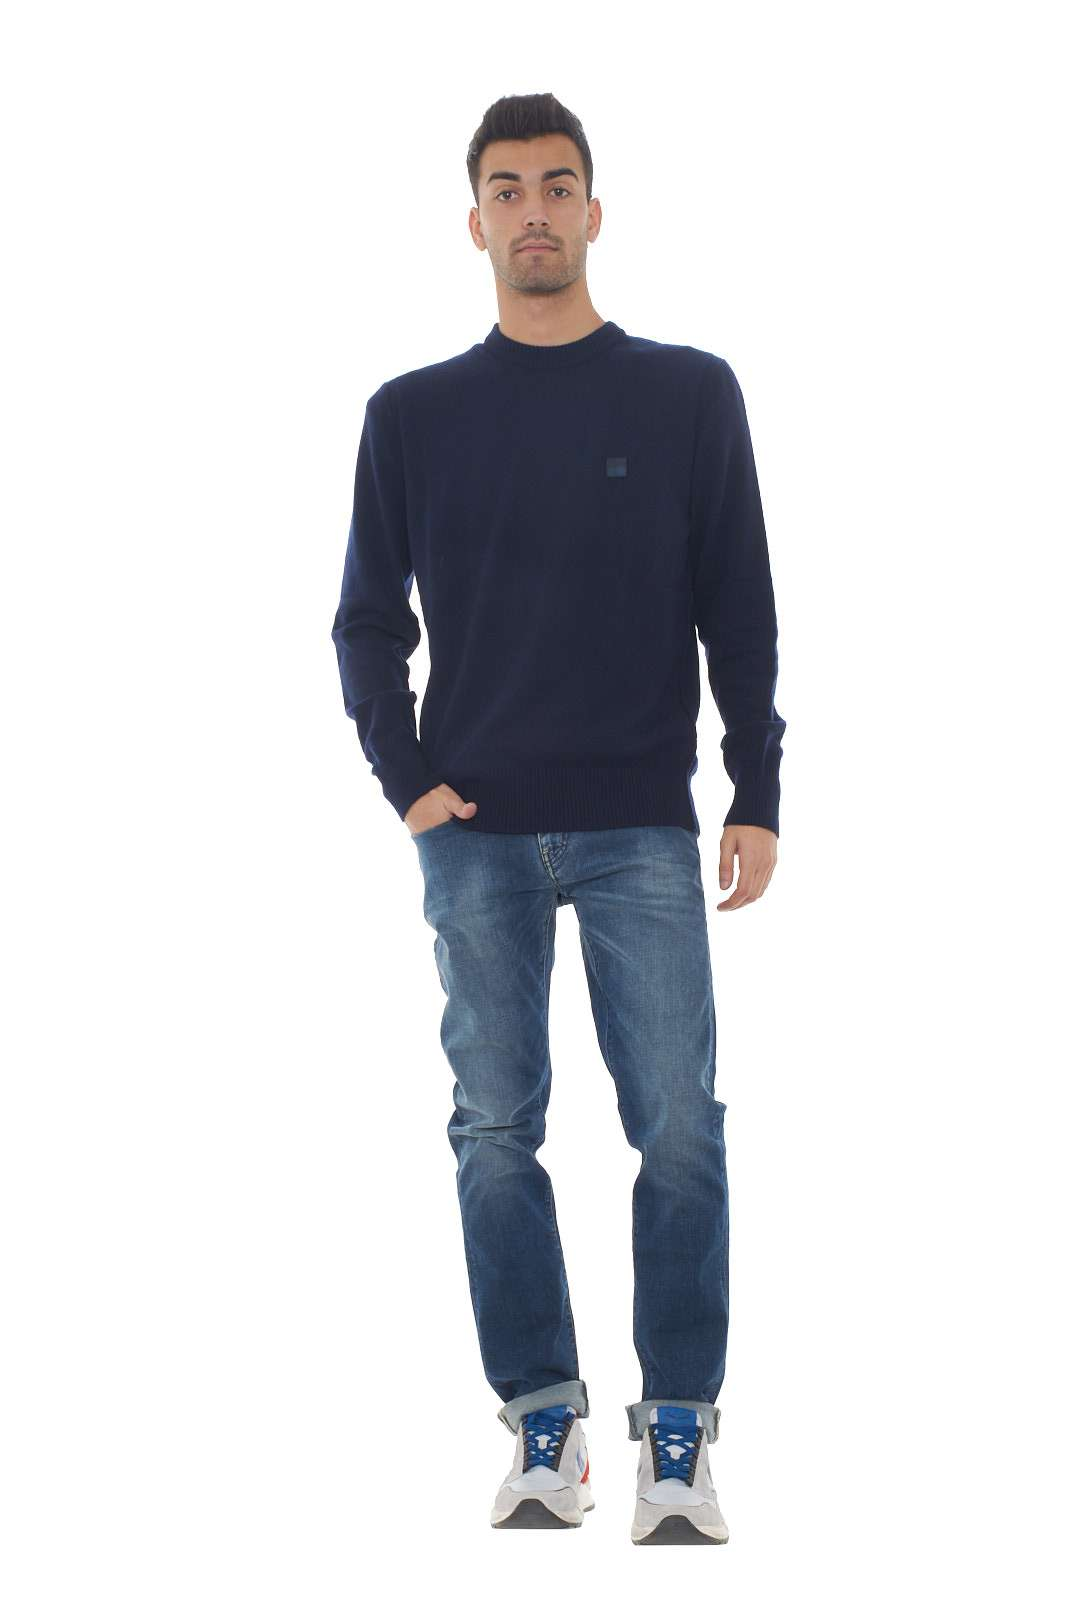 https://www.parmax.com/media/catalog/product/a/i/AI-outlet_parmax-maglia-uomo-Woolrich-WOMAG1884-D.jpg